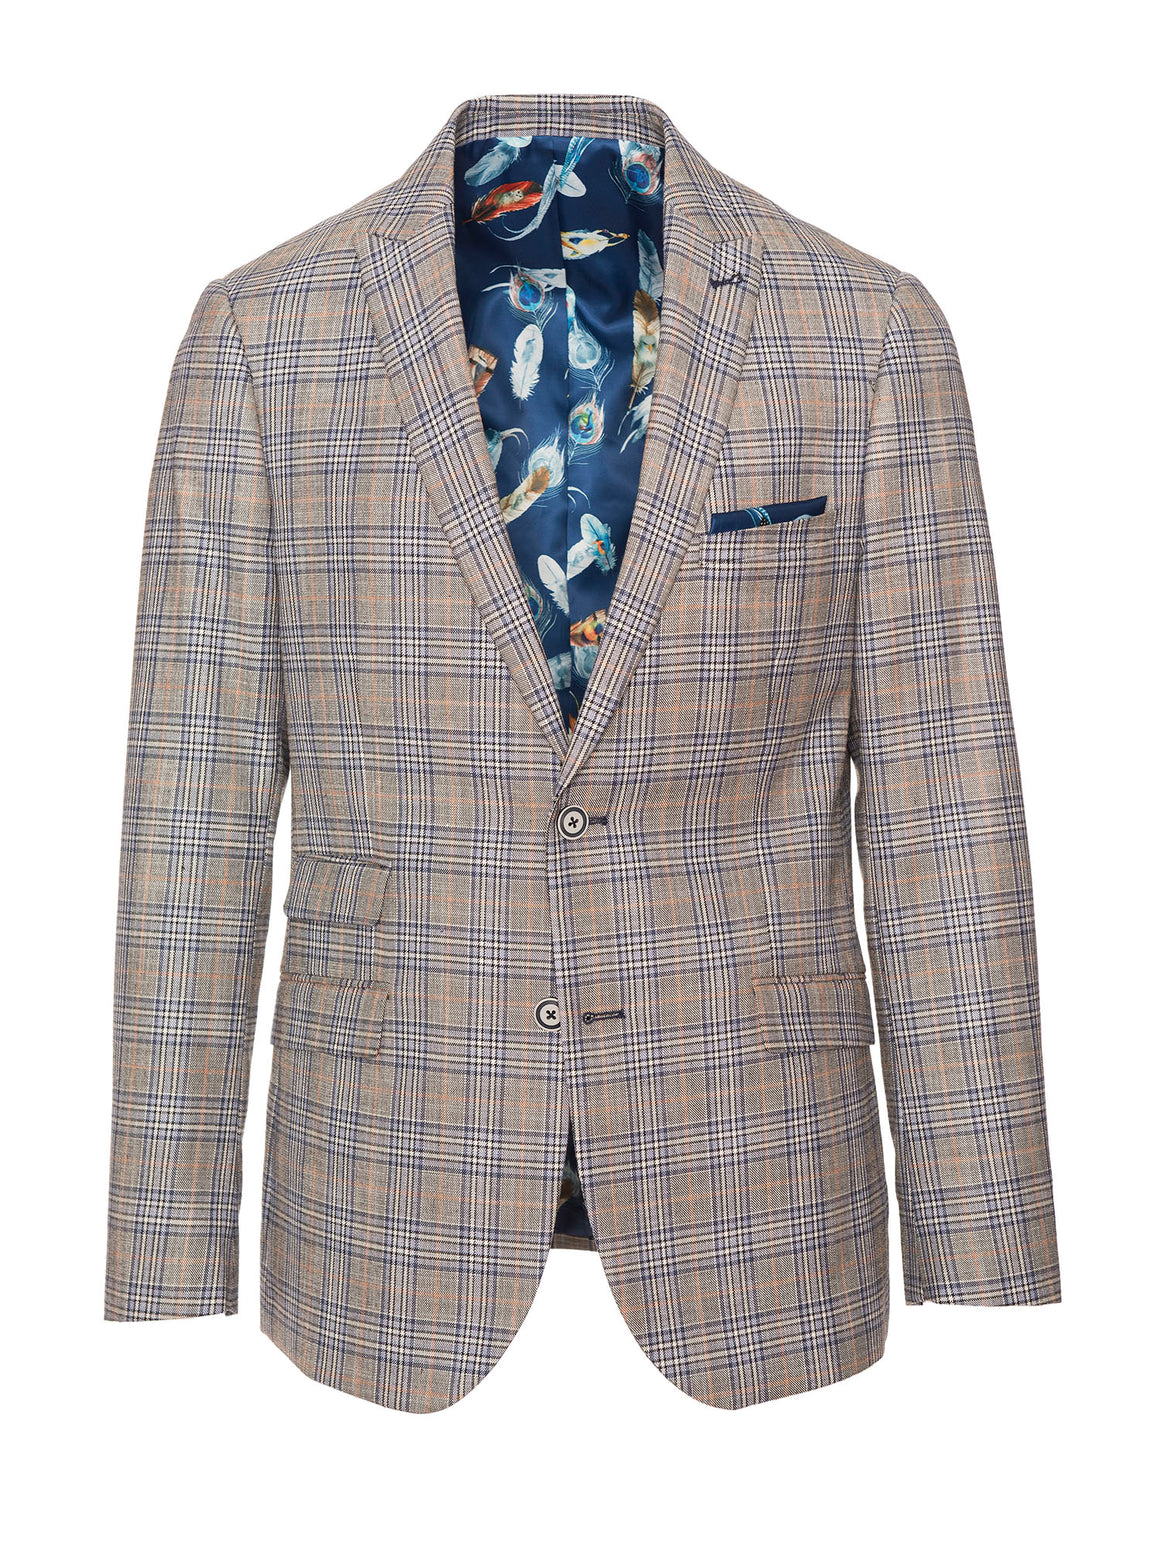 Ashton Peak Jacket - Blue Grey Plaid